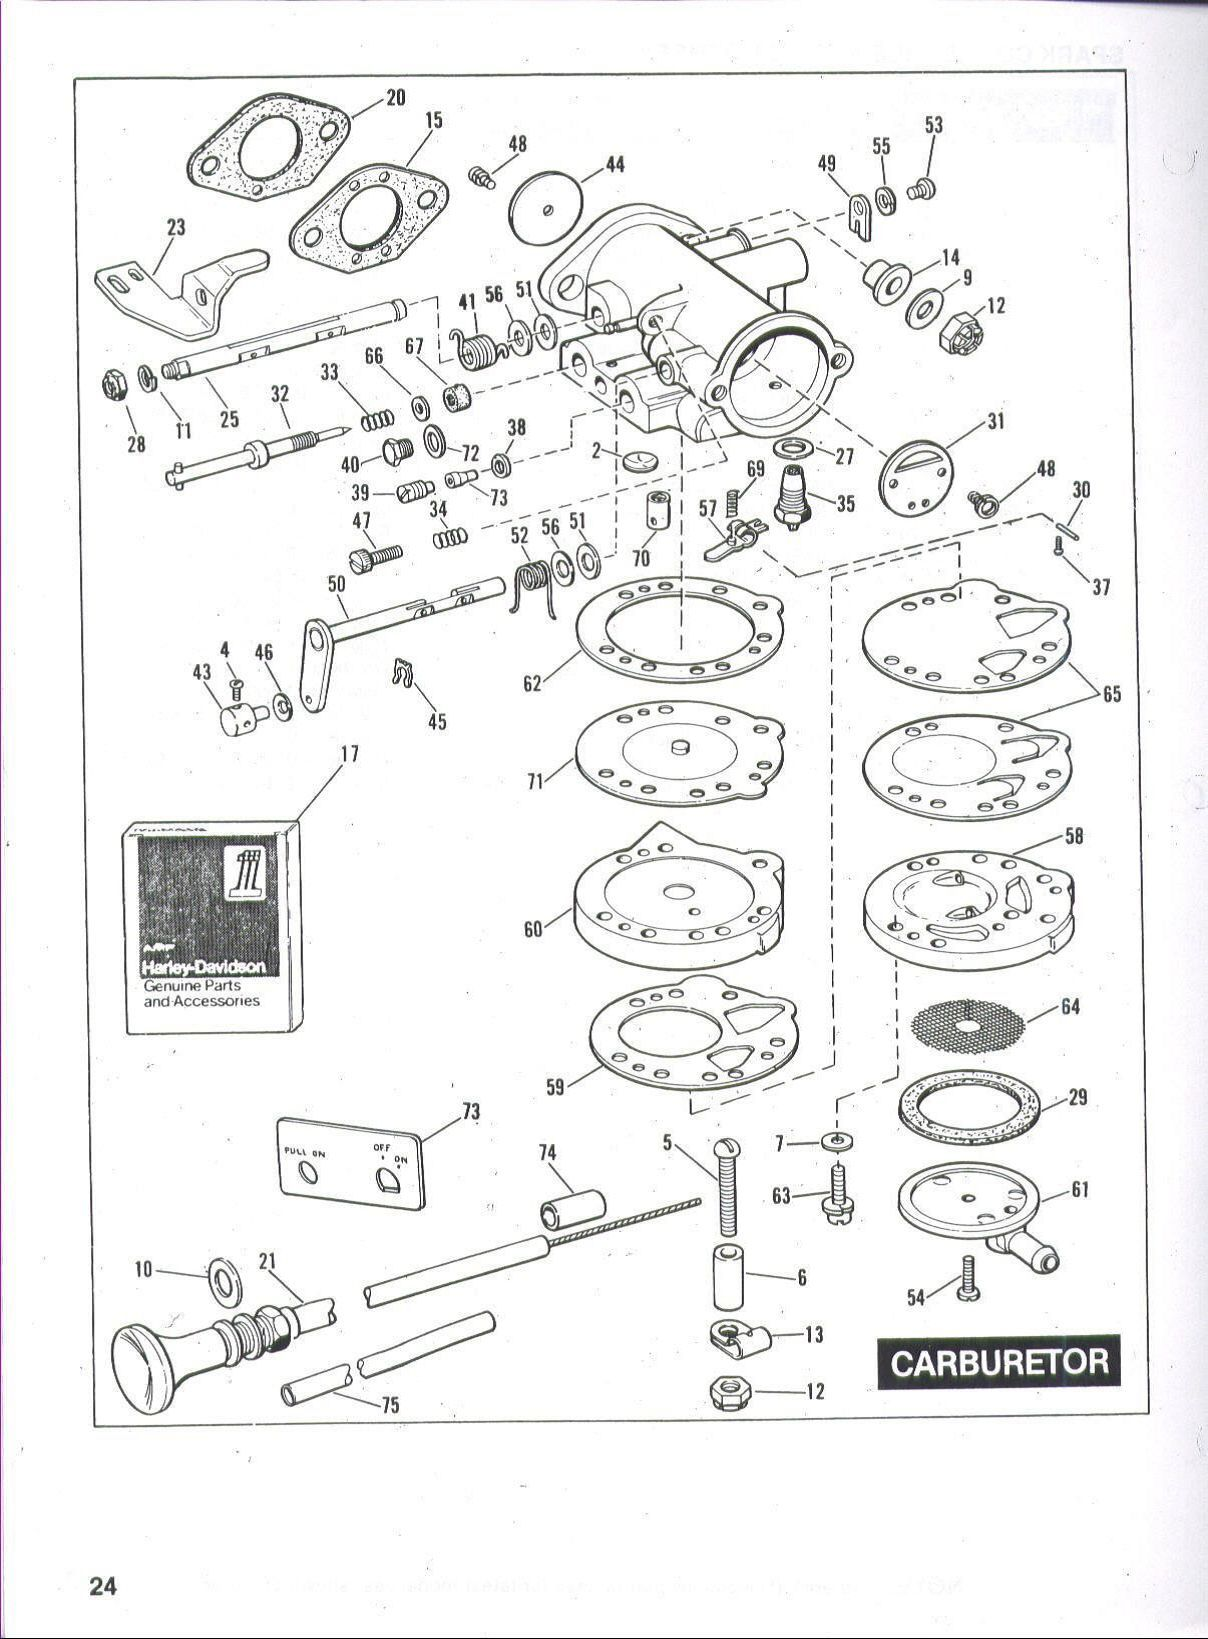 30 Ezgo Carburetor Diagram